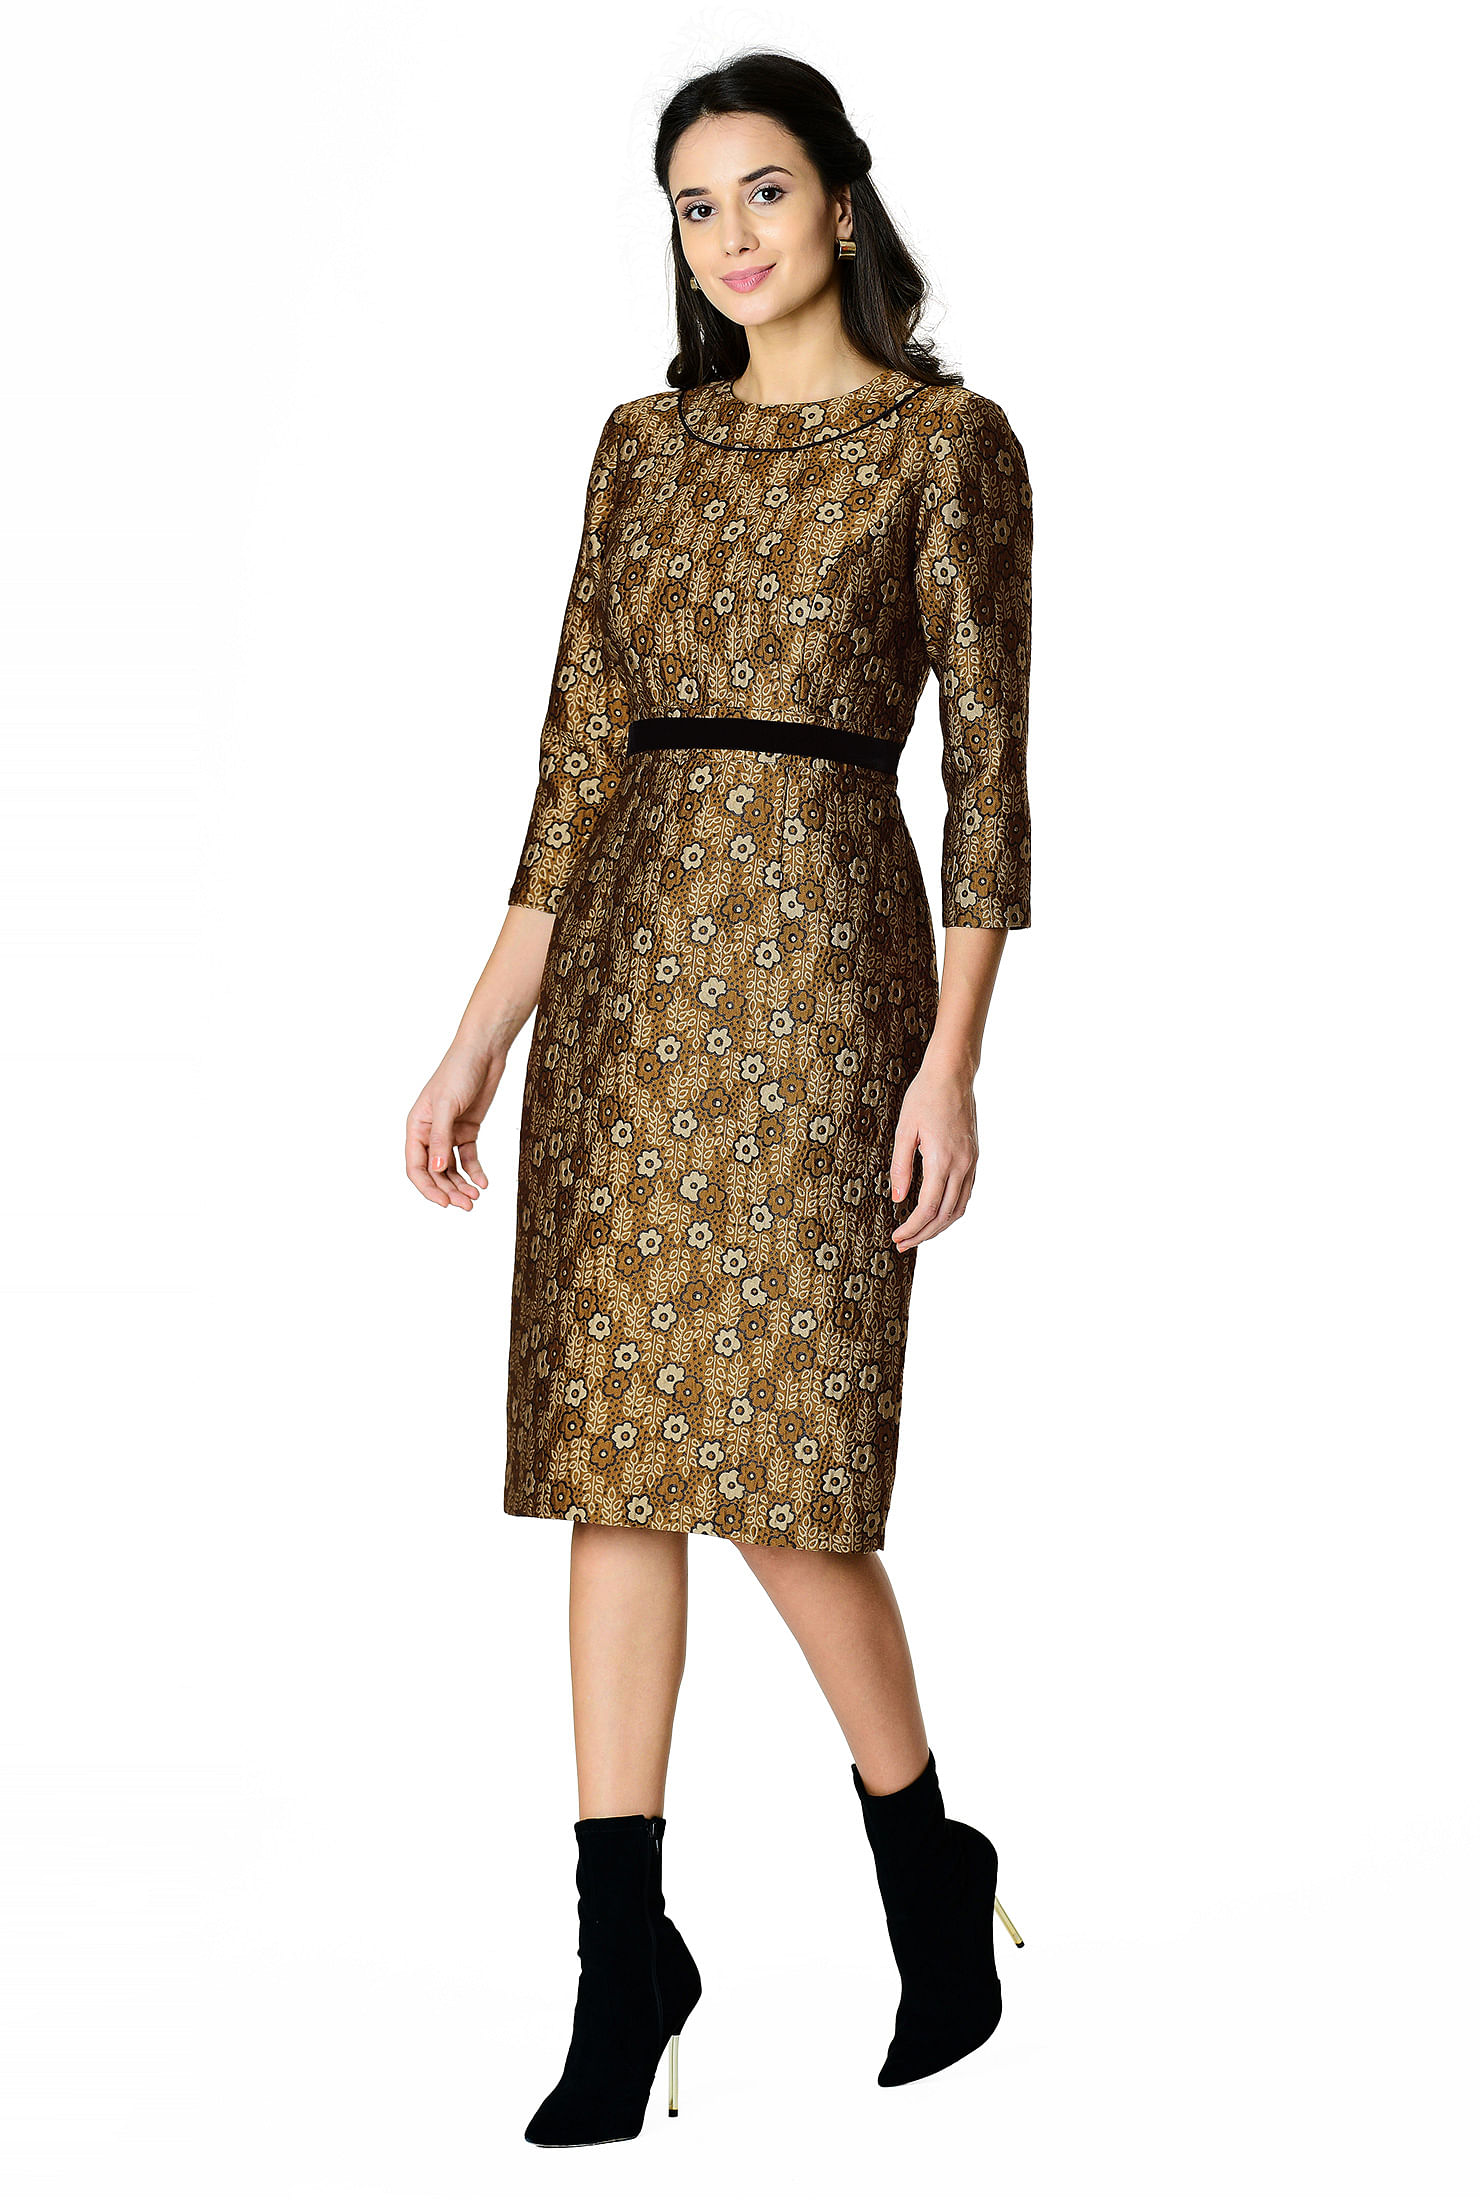 1960s Evening Dresses, Bridesmaids, Mothers Gowns Floral jacquard contrast waist sheath dress $89.95 AT vintagedancer.com